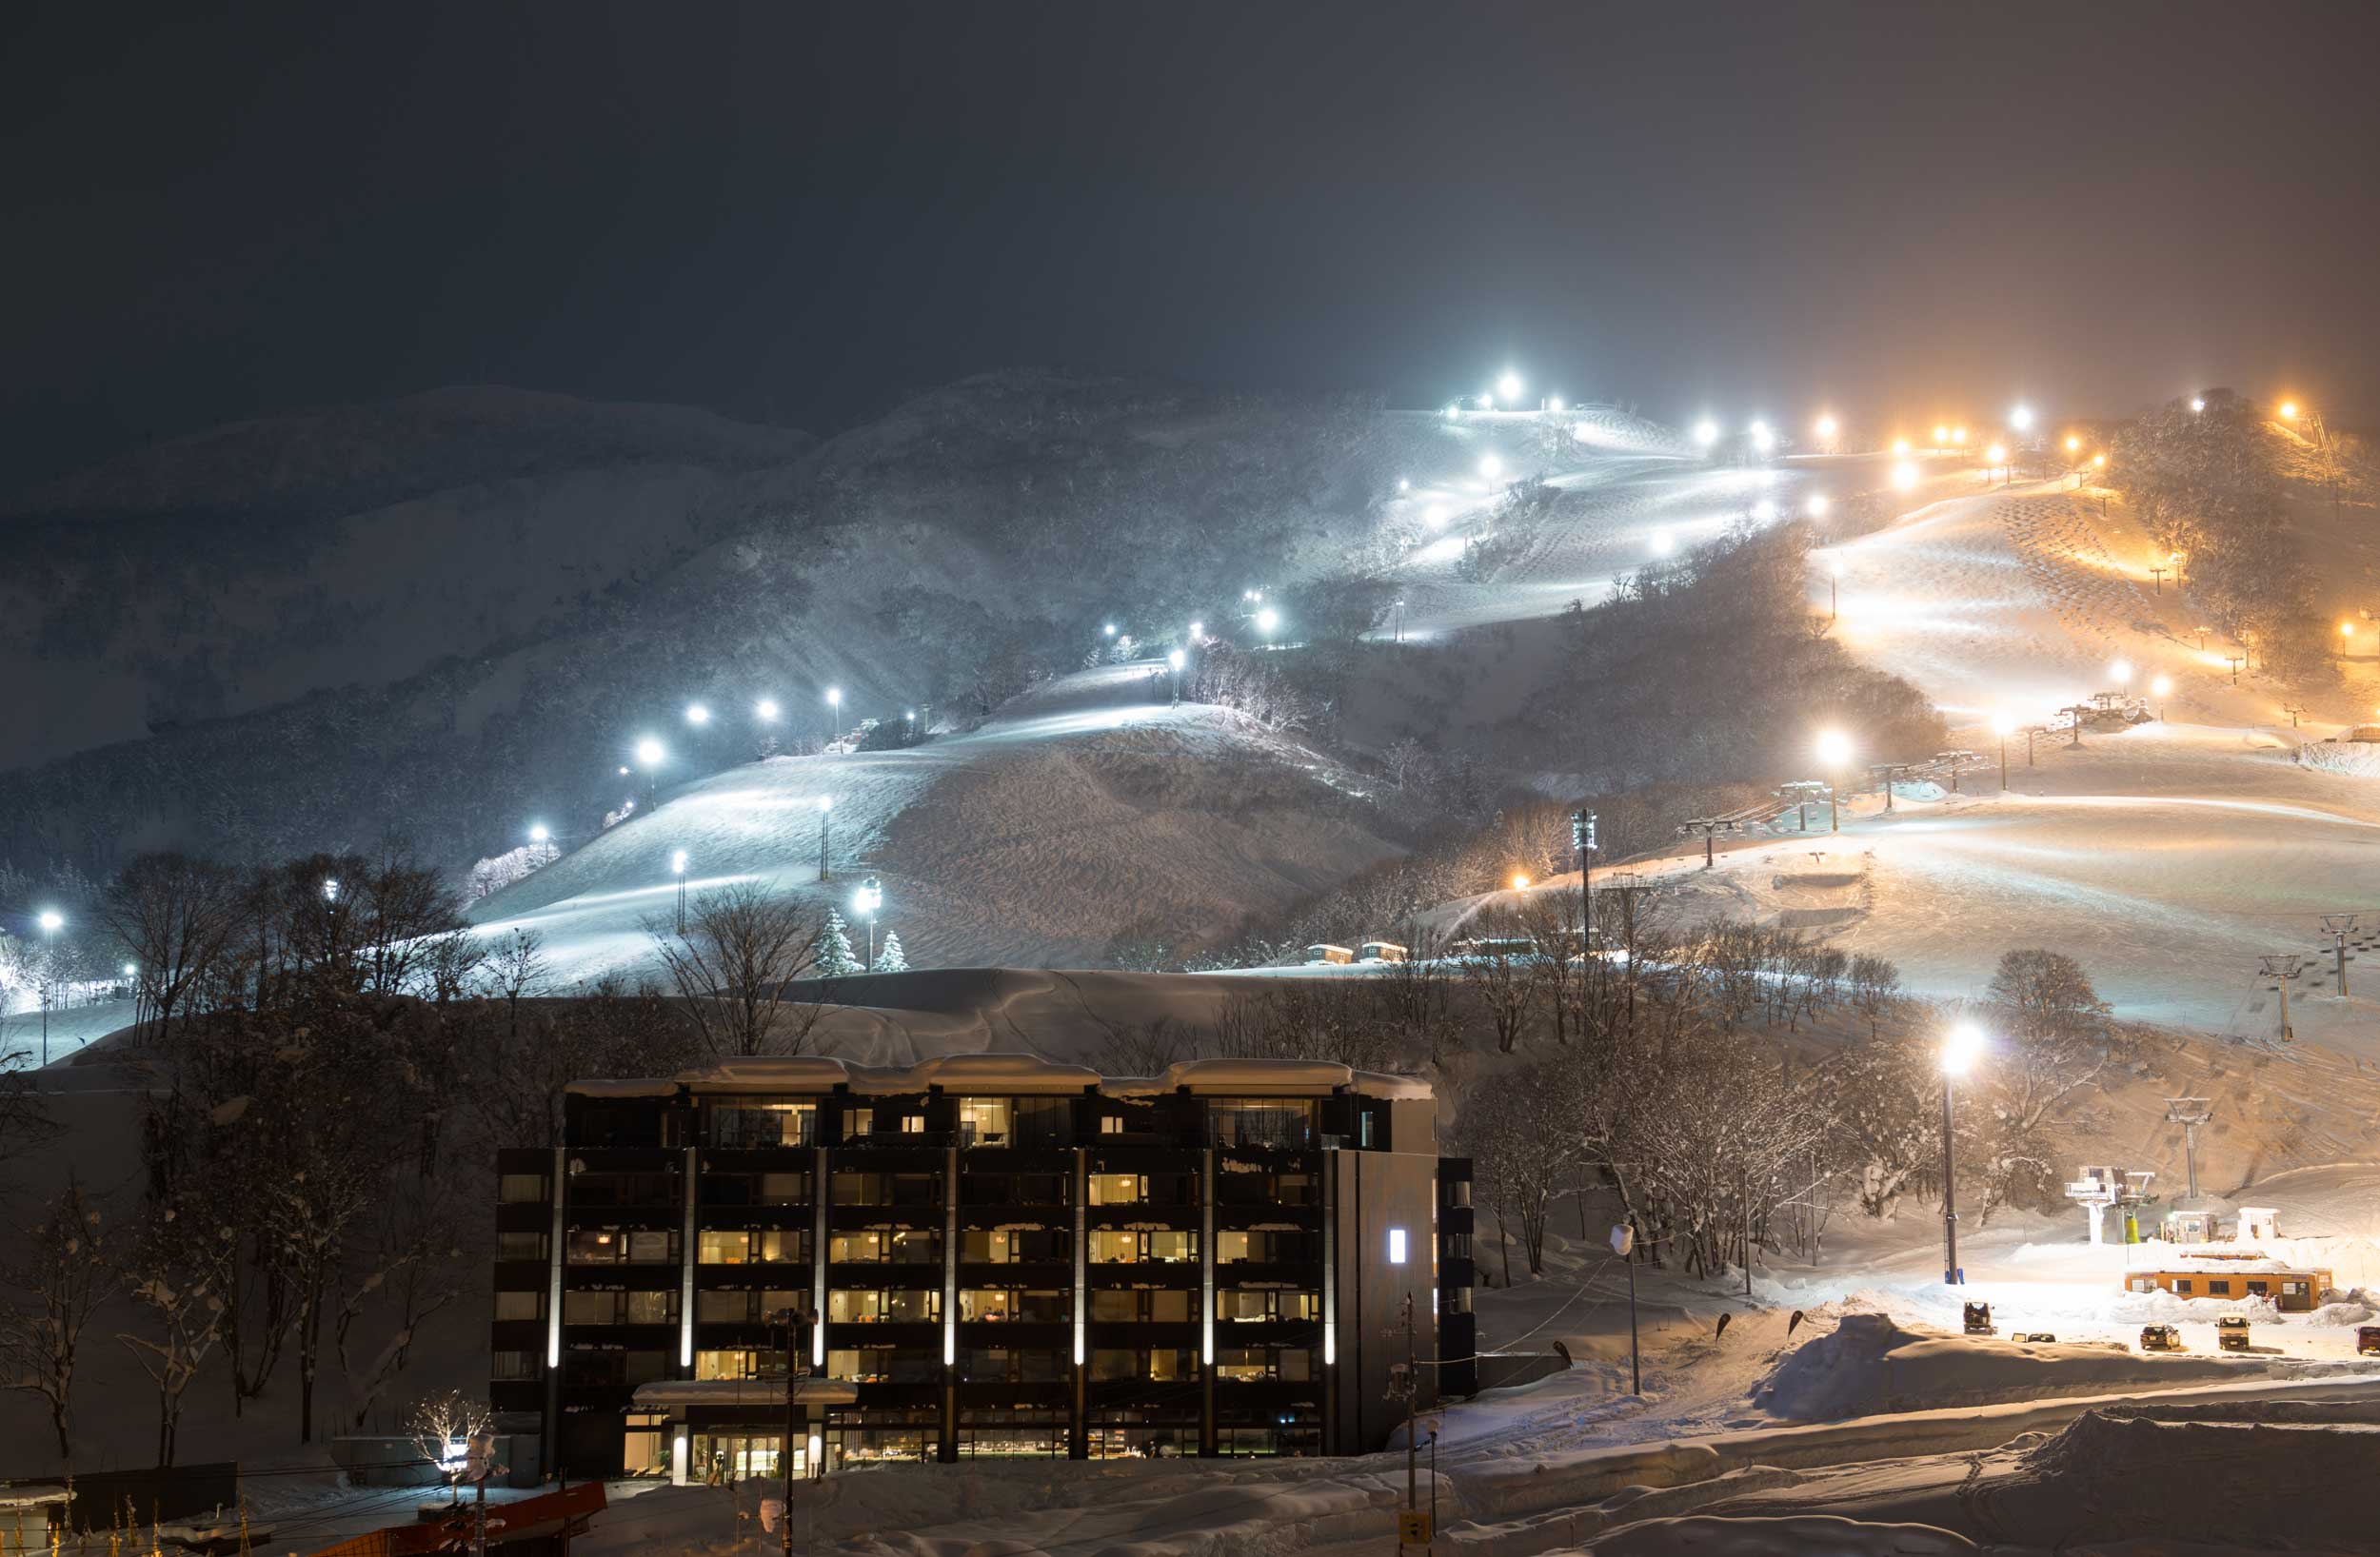 Night view of a building with lighted up ski slopes behind it in Niseko, Japan